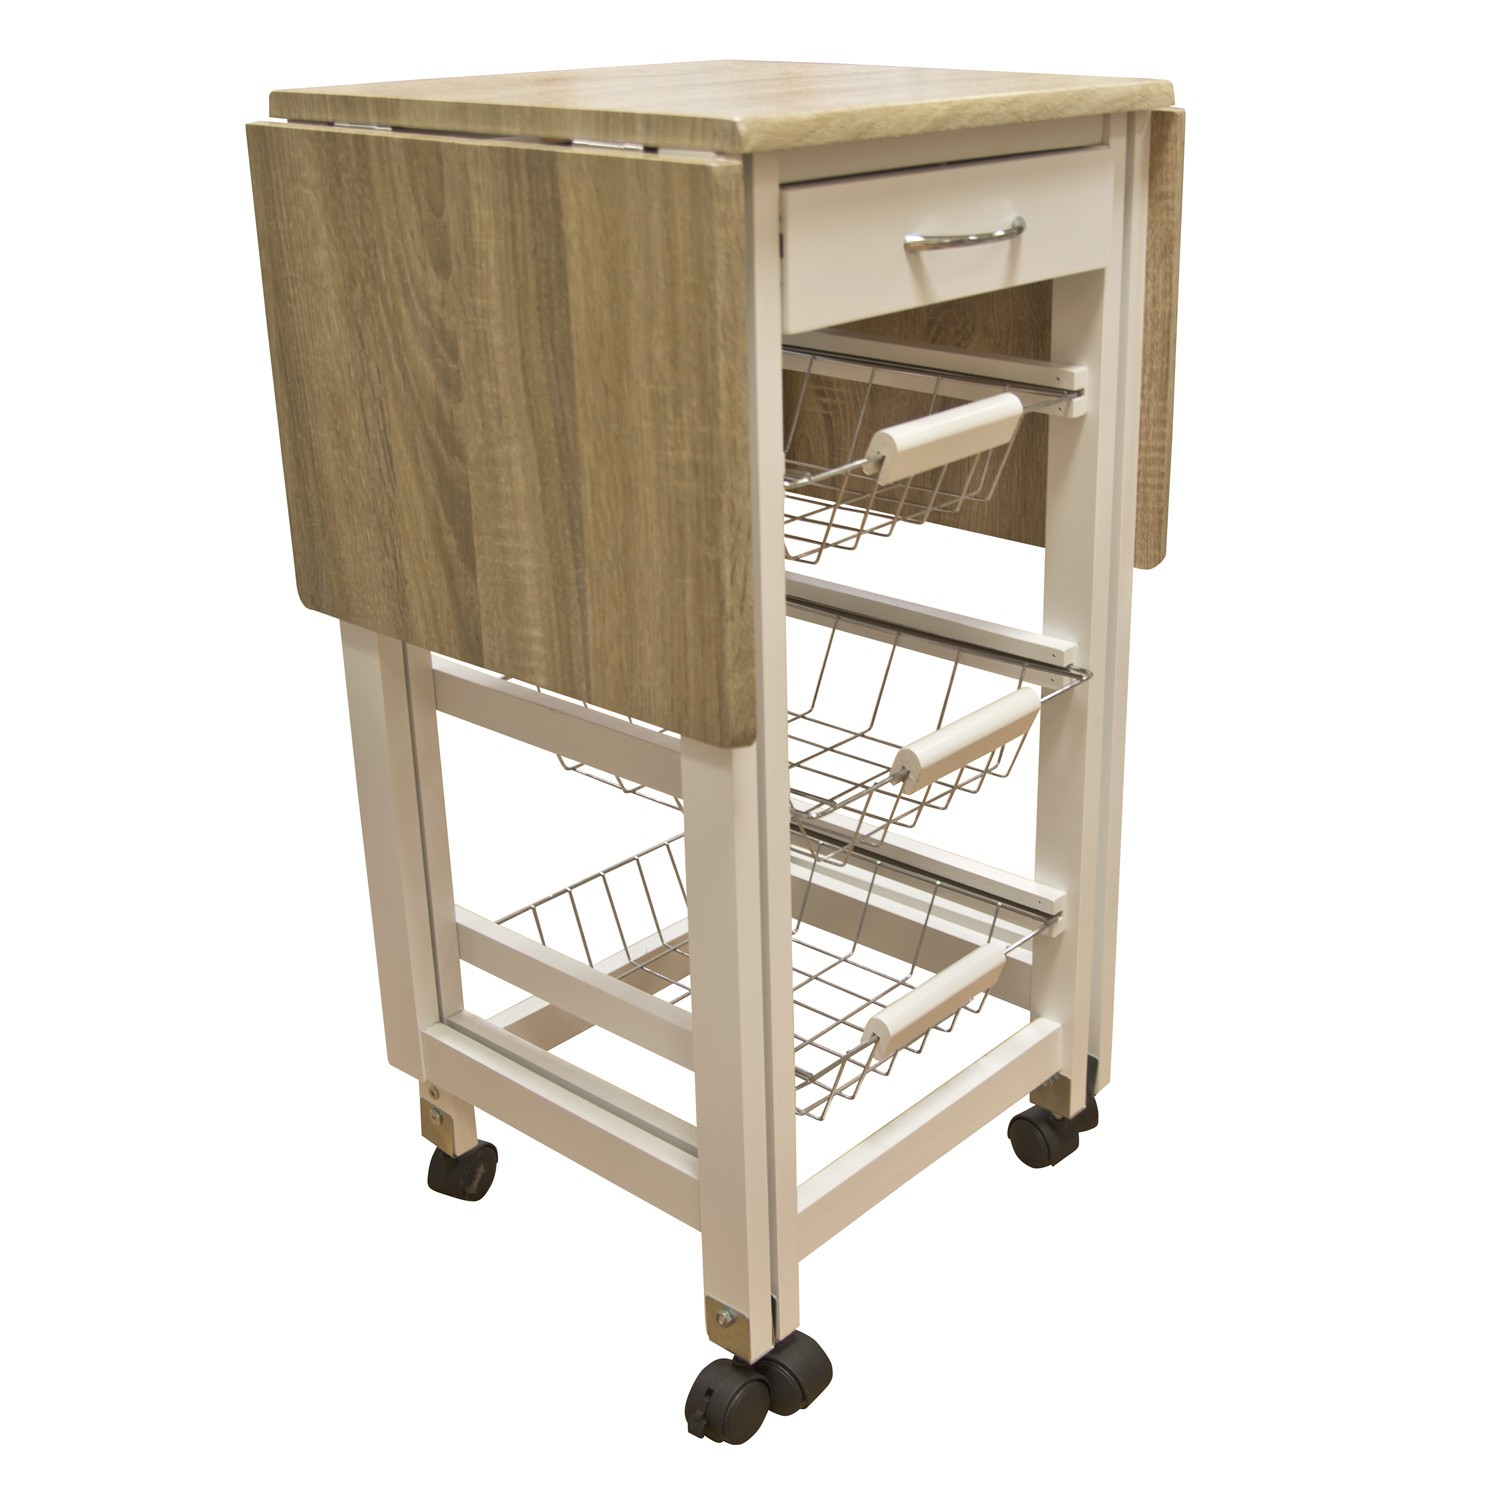 Expanding kitchen trolley leekes - Kitchen cabinets trolleys pictures ...